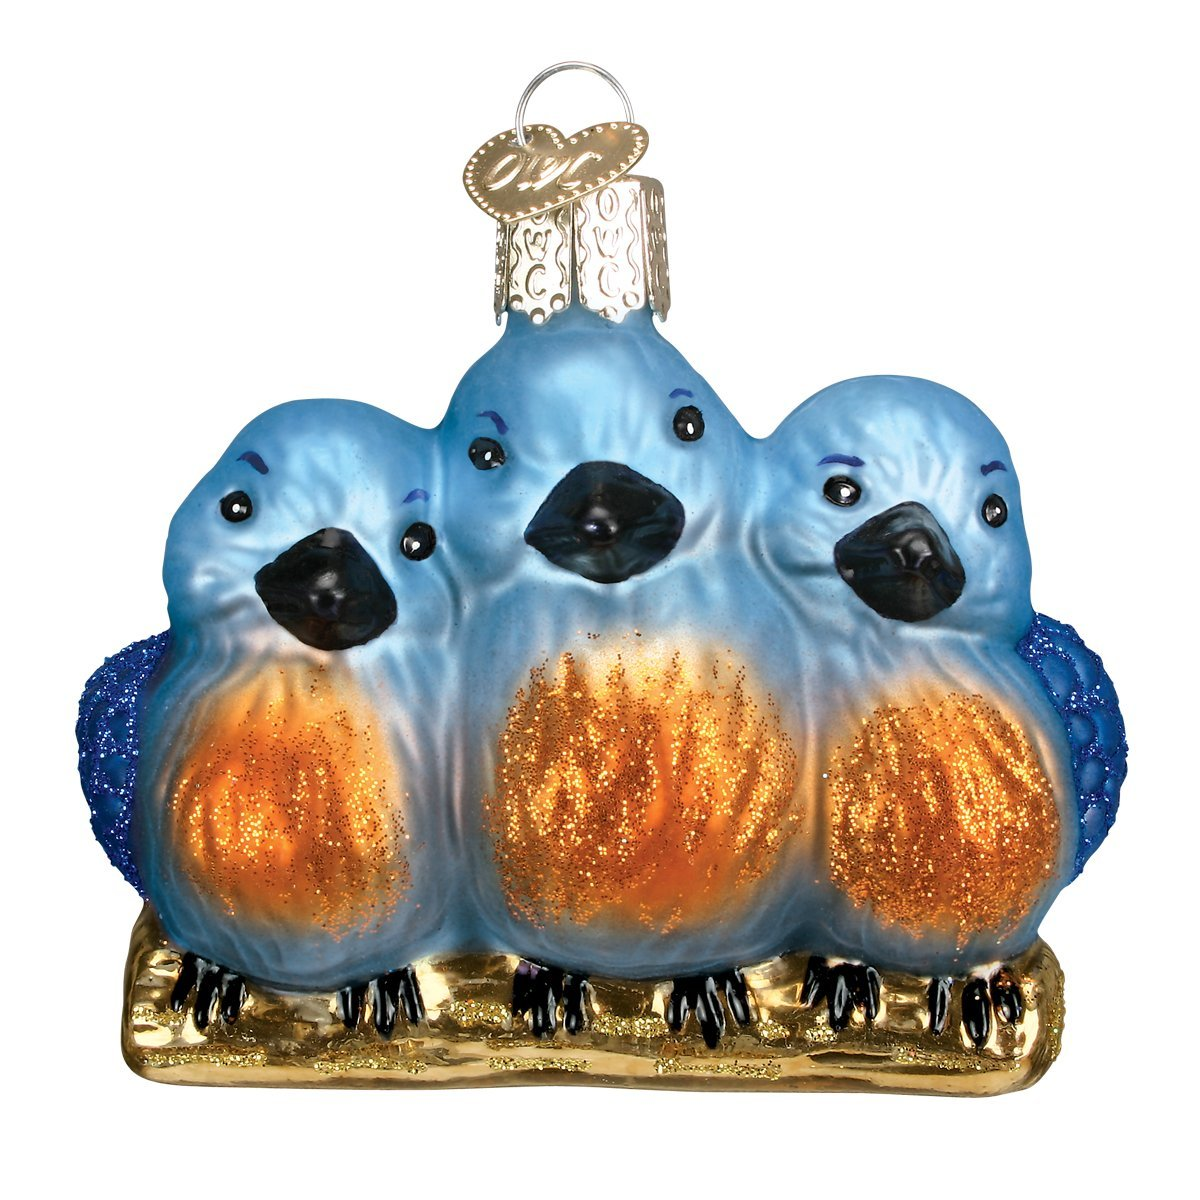 Old World Christmas Ornaments Feathered Friends Glass Blown Ornaments for Christmas Tree